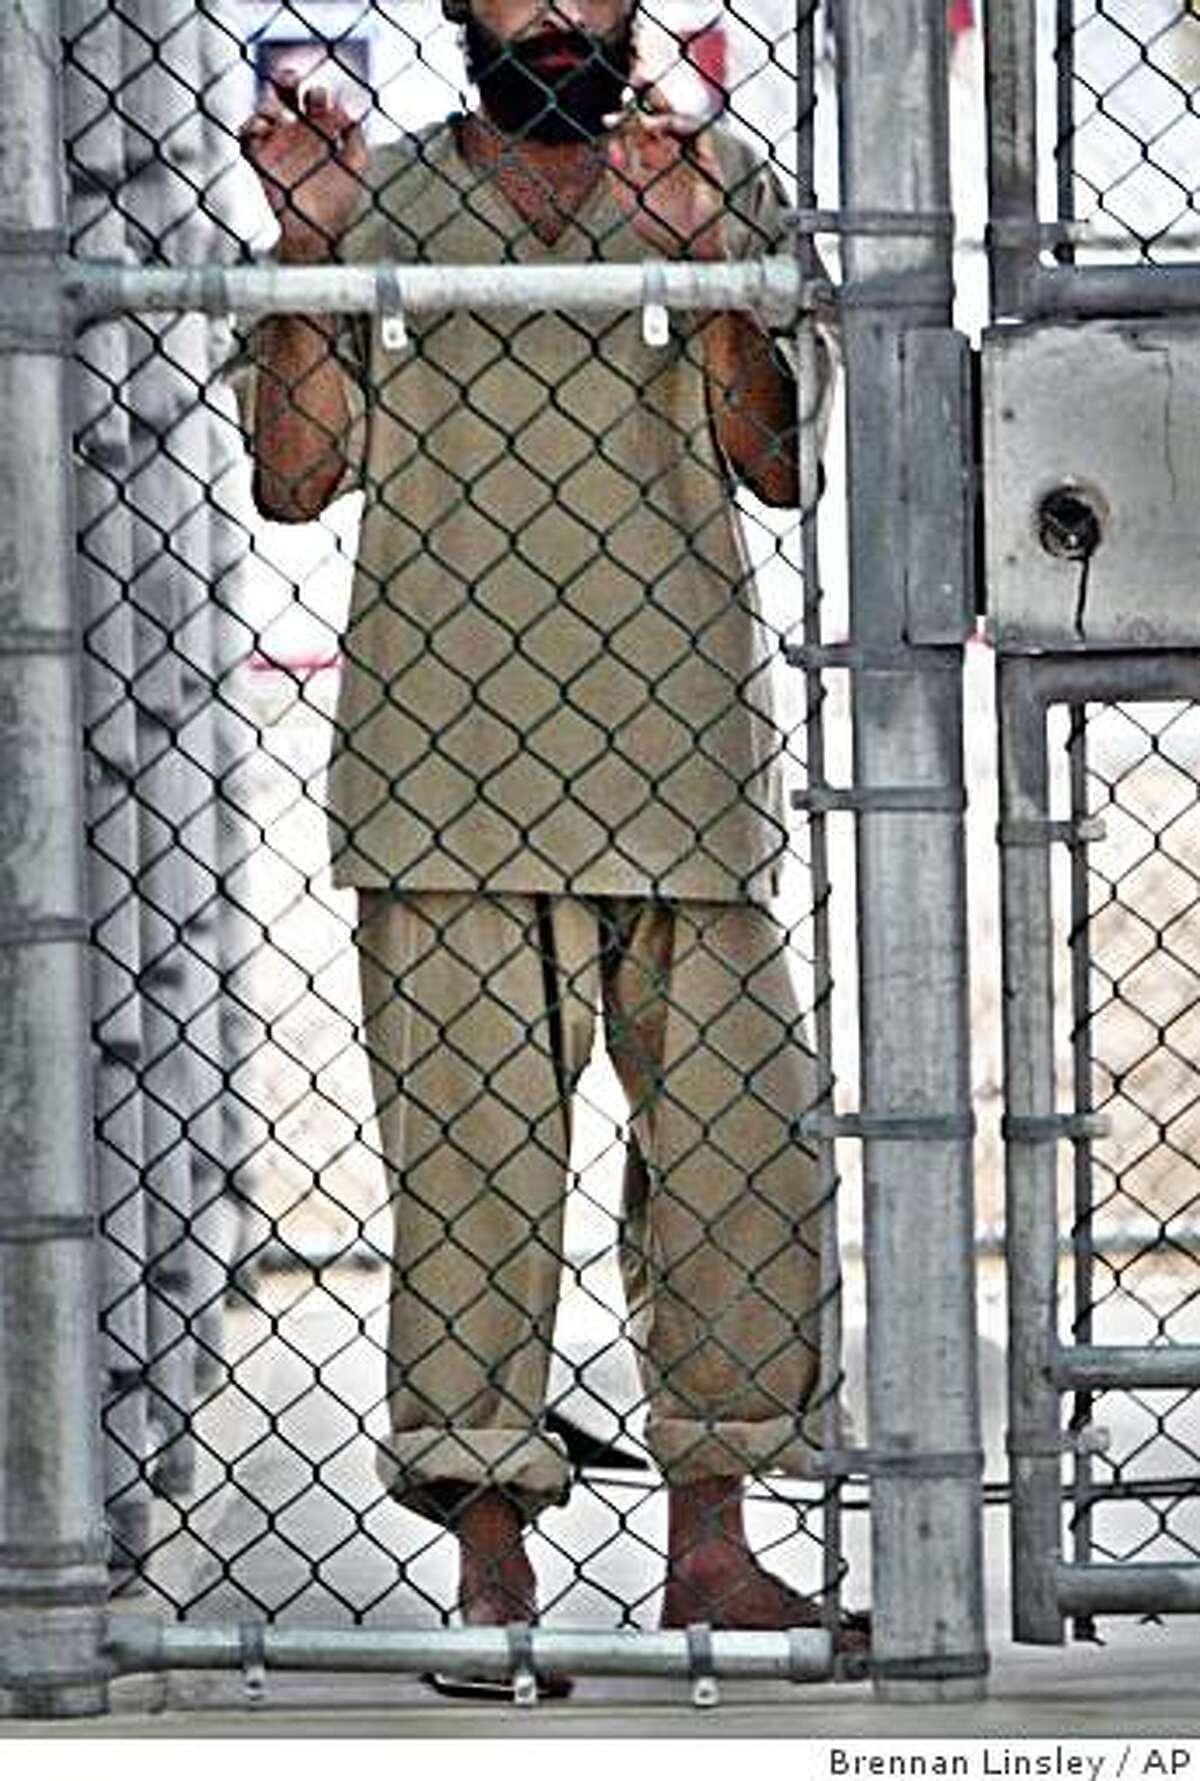 ** FILE ** In this June 26, 2006 file photo reviewed by the U.S. Military, a Guantanamo detainee holds onto a fence on the grounds of the maximum security prison at Camp 5, at Guantanamo Bay U.S. Naval Base, Cuba. A jury of six military officers reached a split verdict on Wednesday, Aug. 6, 2008, at Guantanamo Bay in the war crimes trial of Salim Ahmed Hamdan, a former driver for Osama bin Laden, clearing him of some charges but convicting him of others that could send him to prison for life. The judge scheduled a sentencing hearing for later Wednesday.(AP Photo/Brennan Linsley)